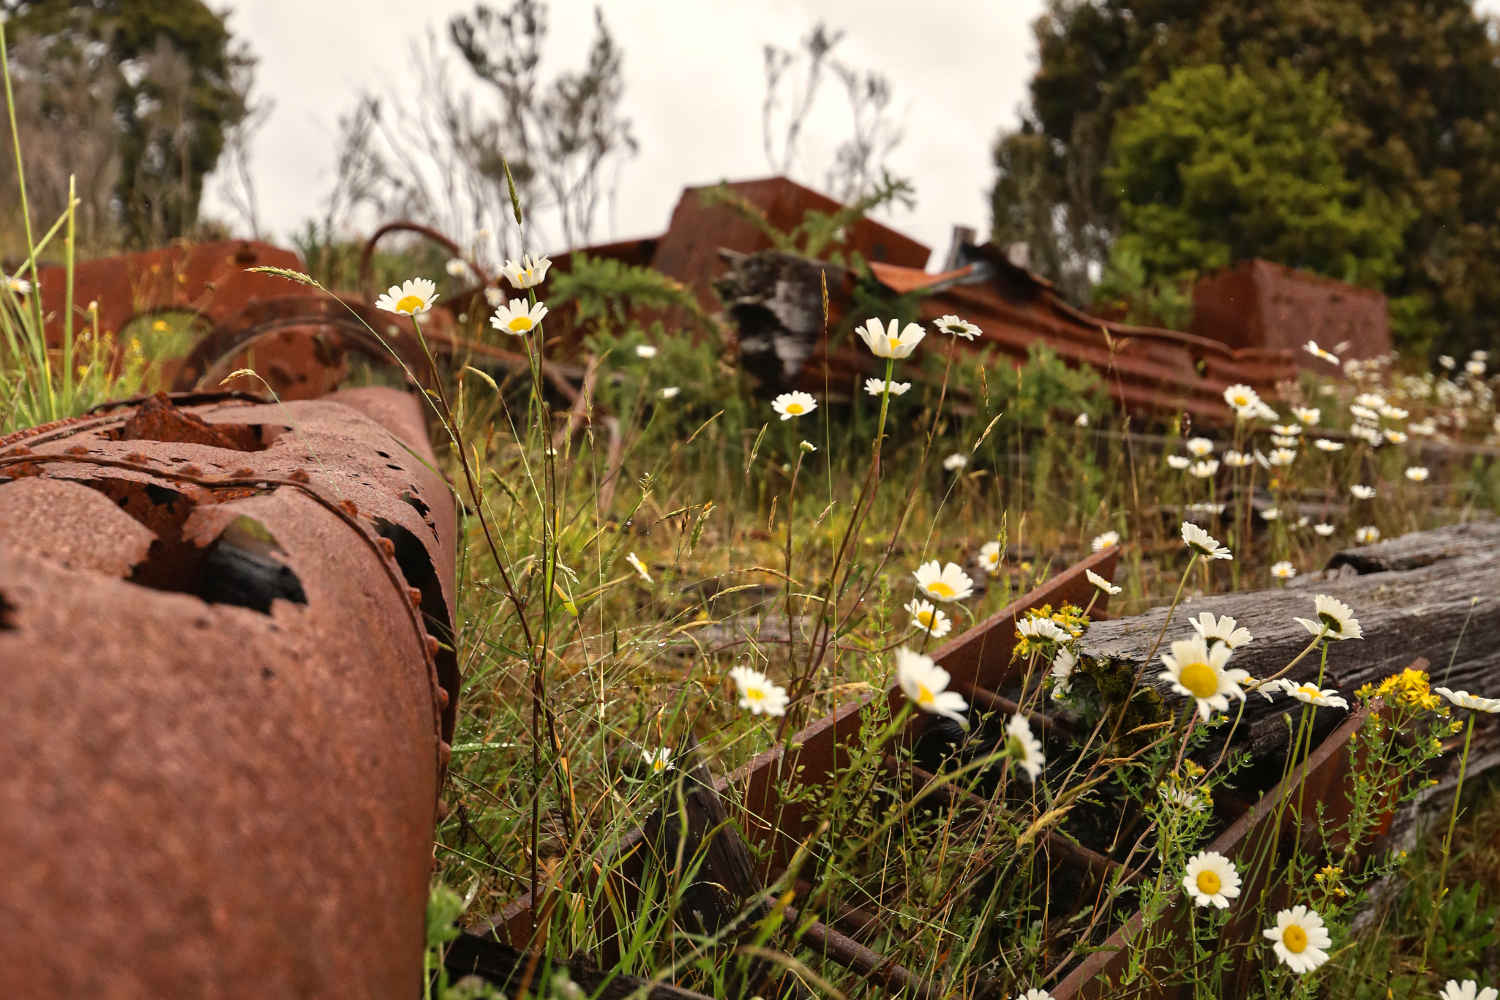 Econiomic decline, Gold mining relics being reclaimed by nature,New Zealand